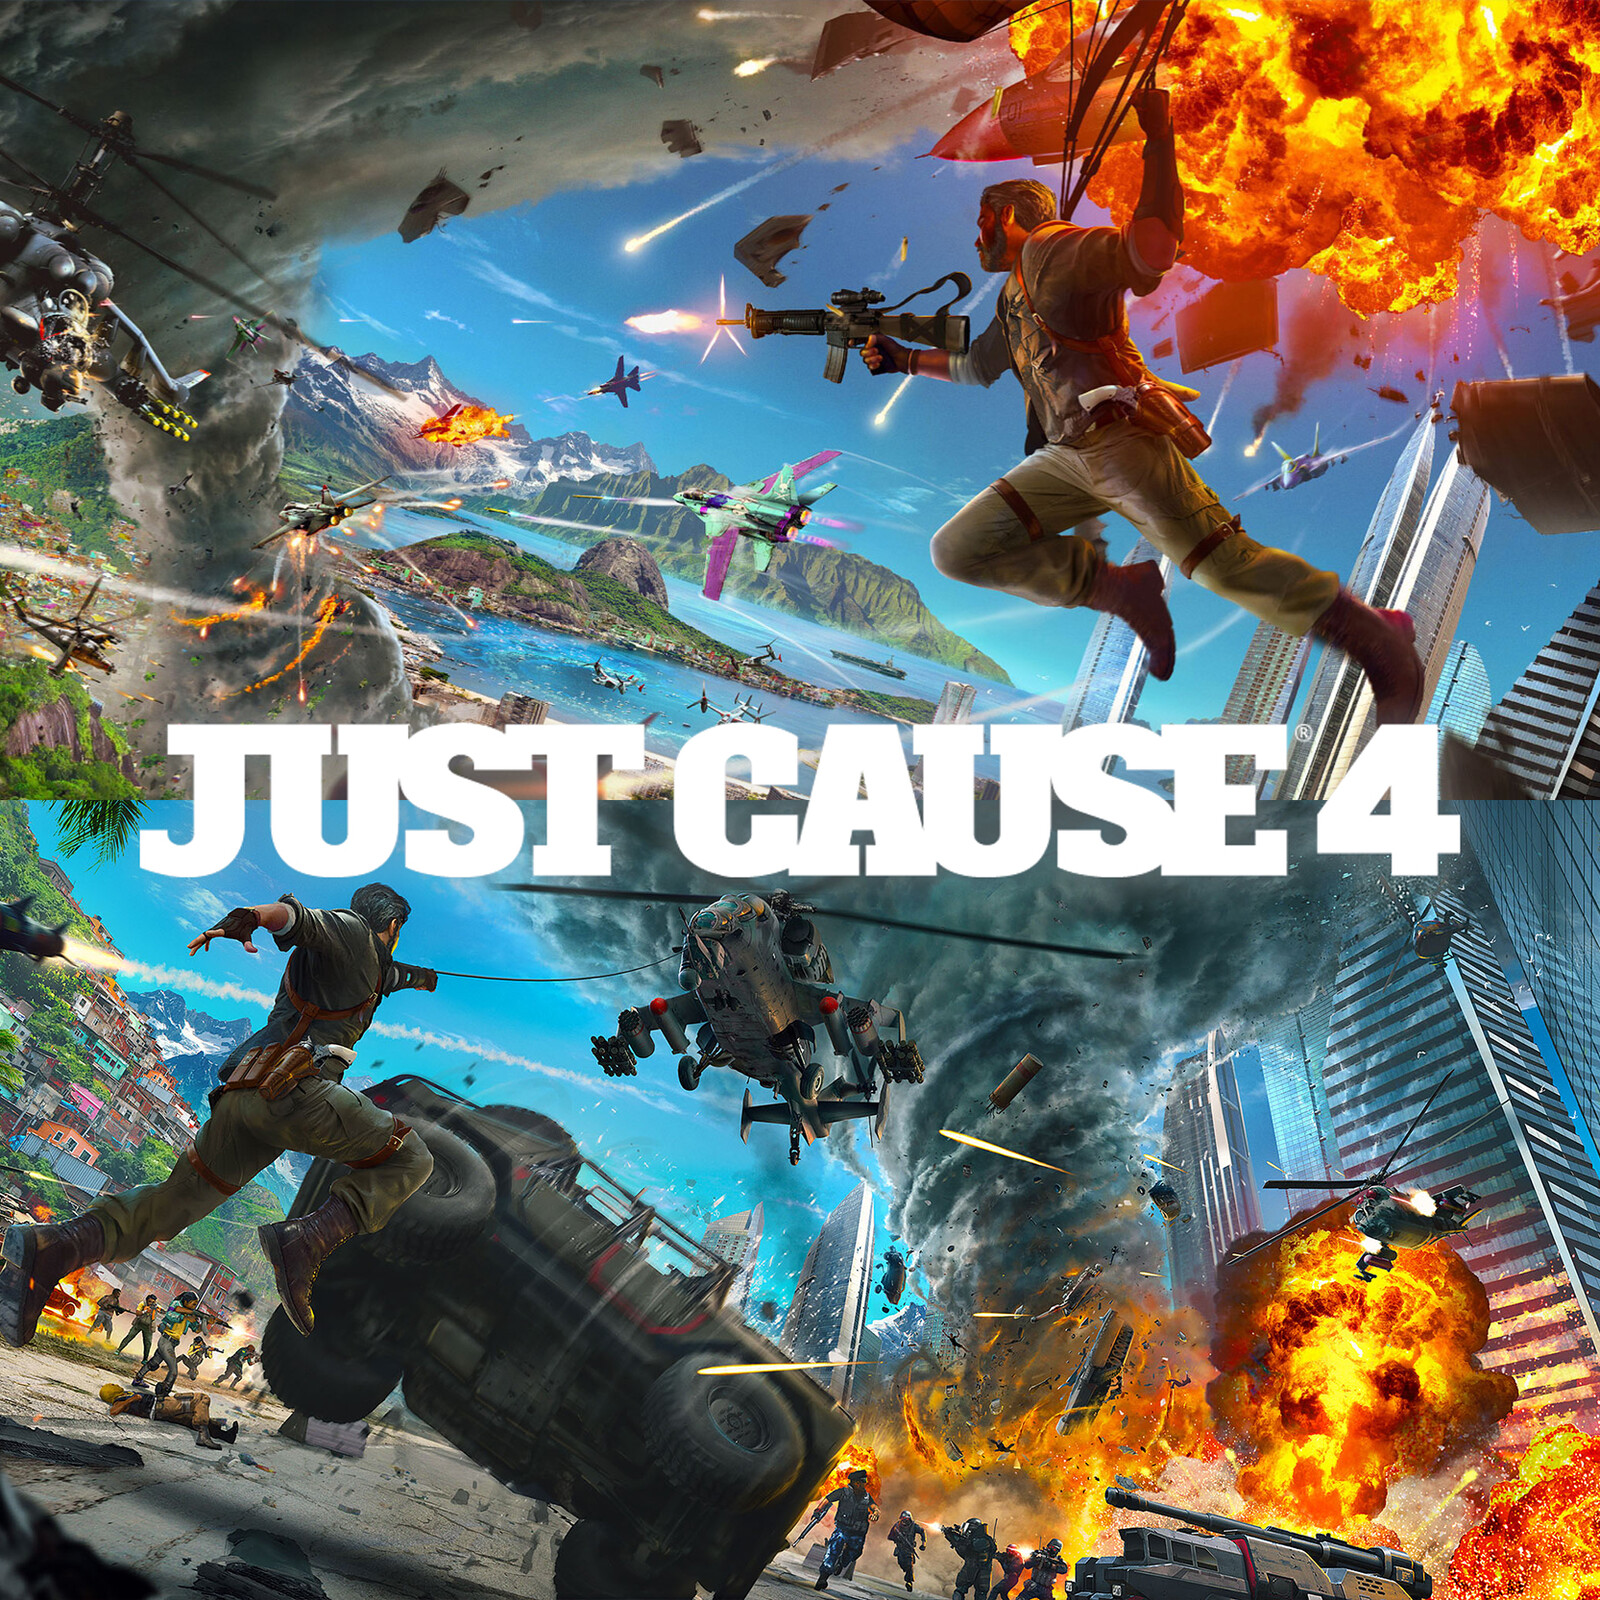 Just Cause 4: Key art